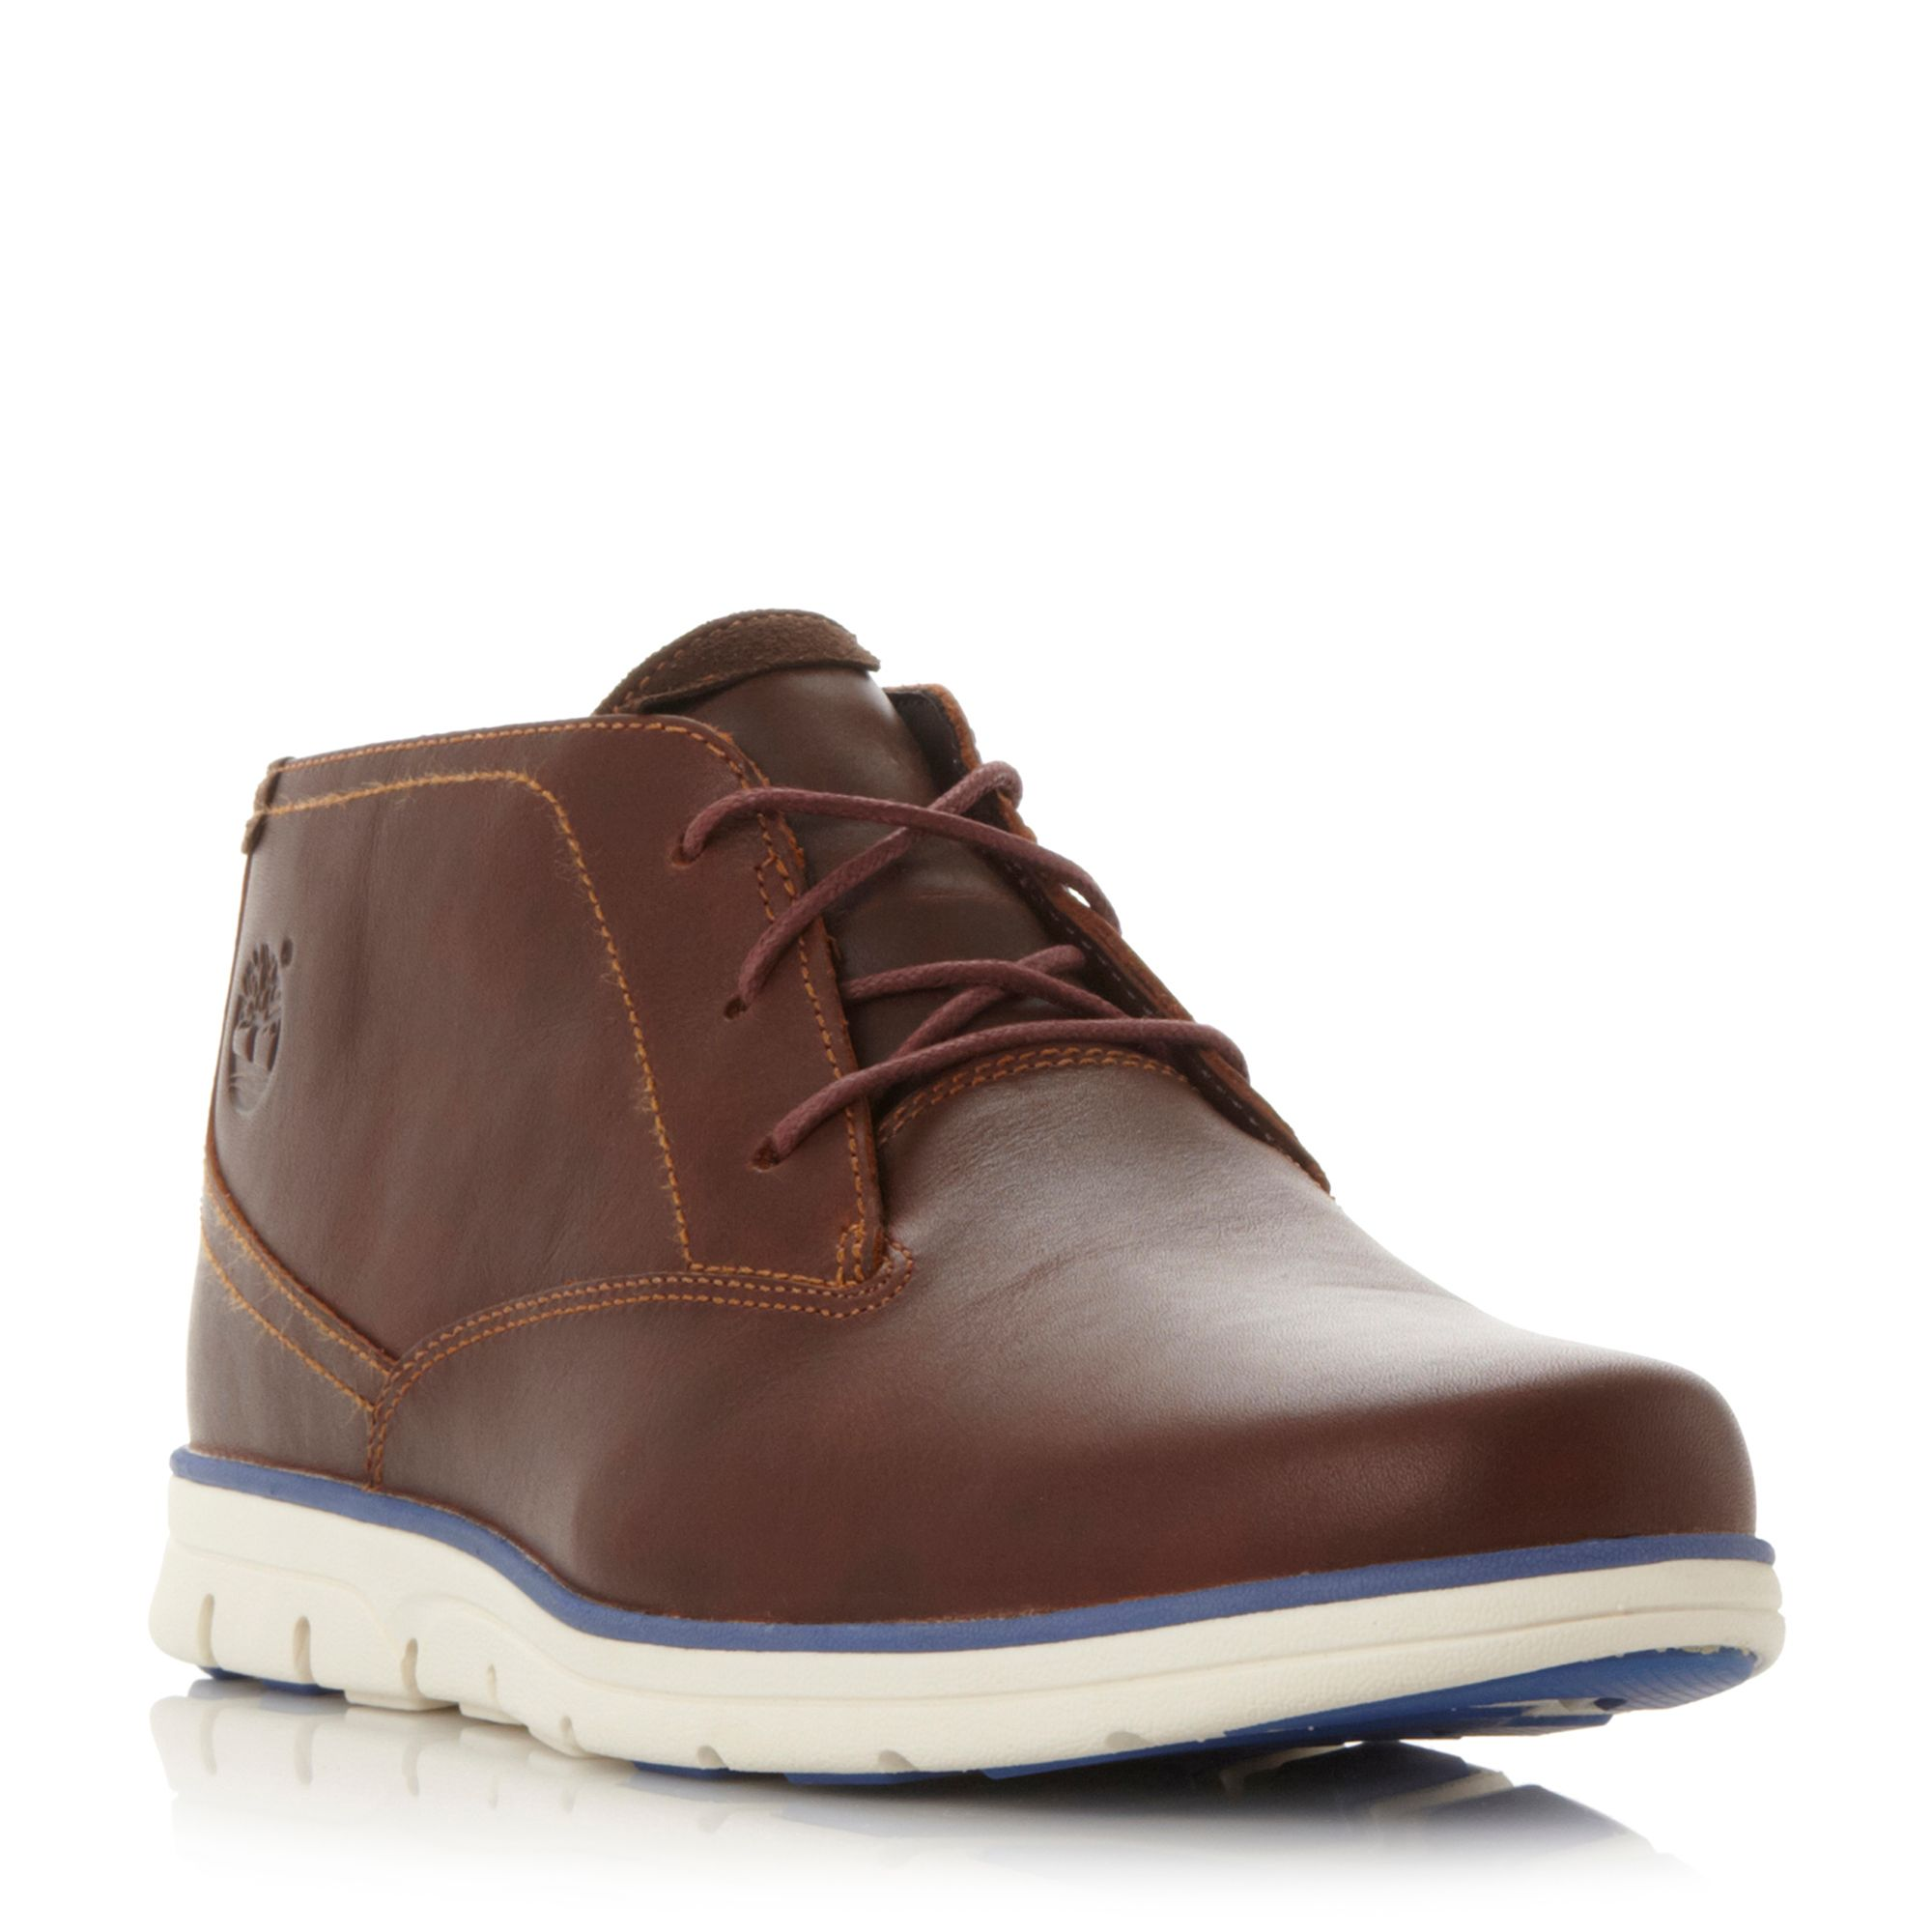 Timberland A11br White Wedge Sole Chukka Boots - House of Fraser